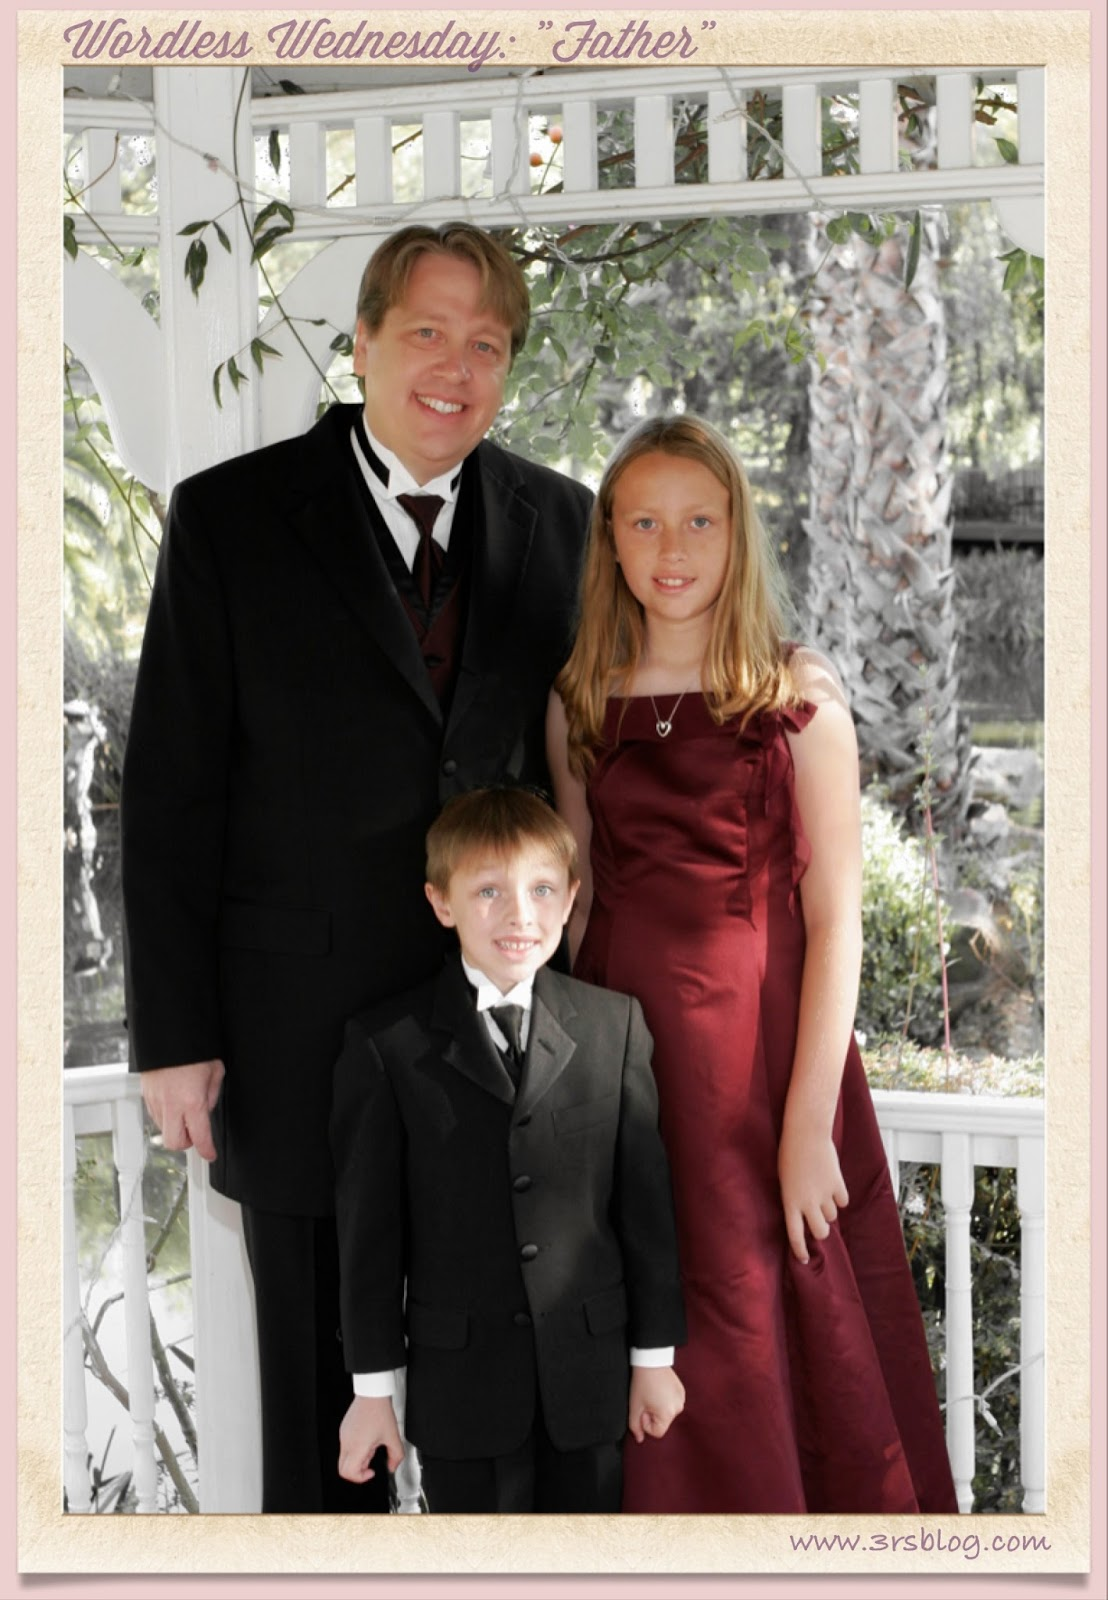 "Wordless Wednesday 6-10-2014 ""Father"" family wedding photo"